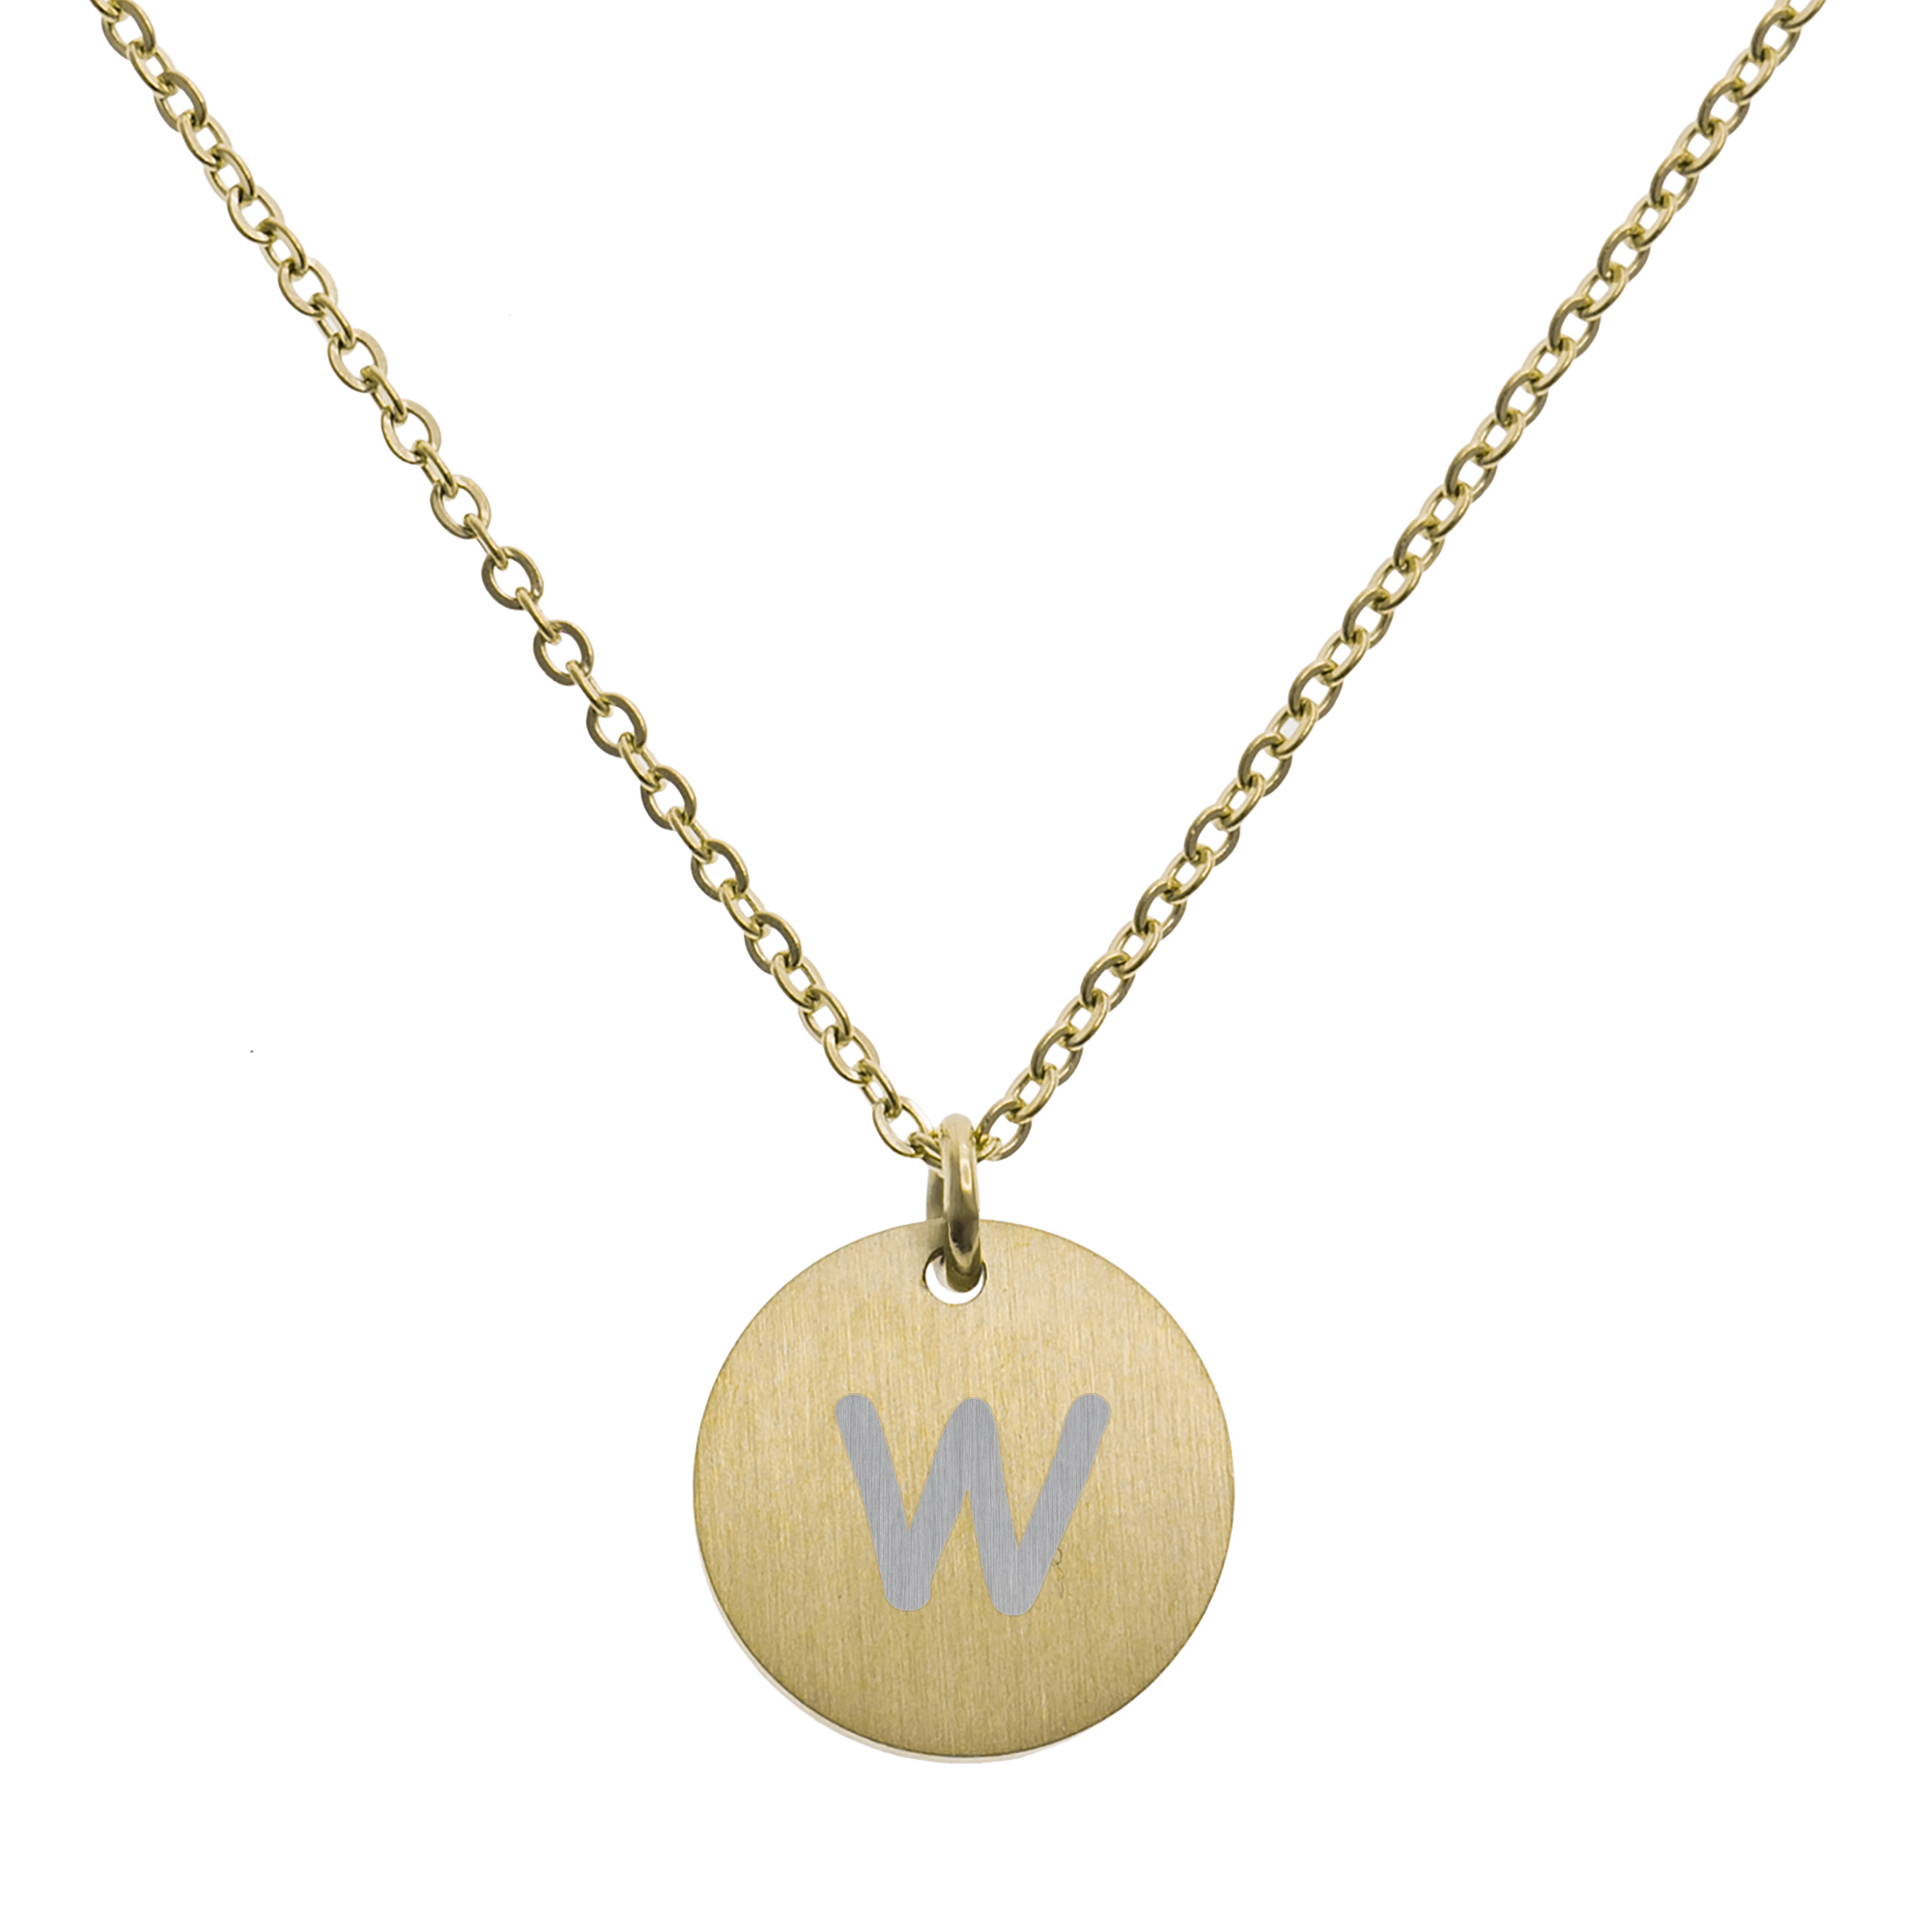 Engraved Metal Initial Letter Disc Pendant Chain Necklace 18.5 in + 2.5 in - W - Gold Tone